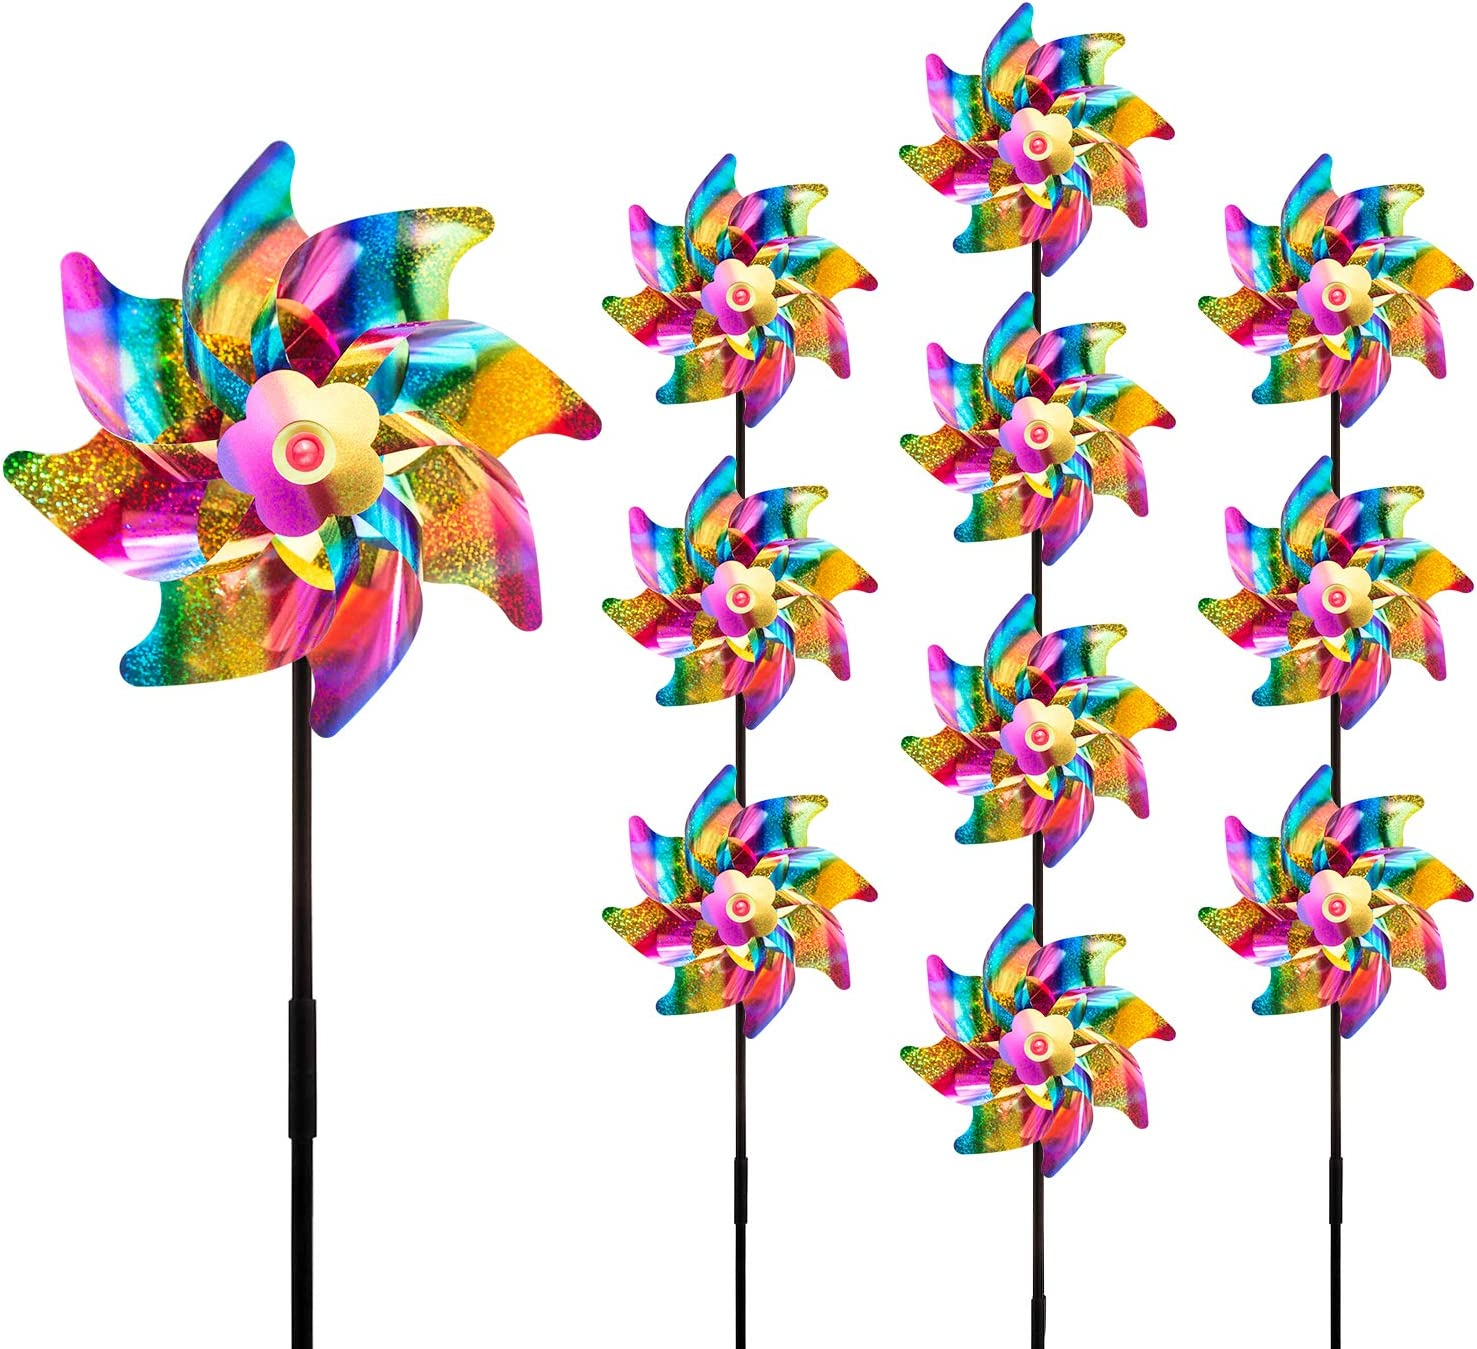 10-Pack Sparkly Reflective Pinwheels, Pin Wheel Holographic Spinners Whirl Reflective Pinwheel Scare Birds Away for Garden Yard Patio Lawn Farm Decor (Rainbow)